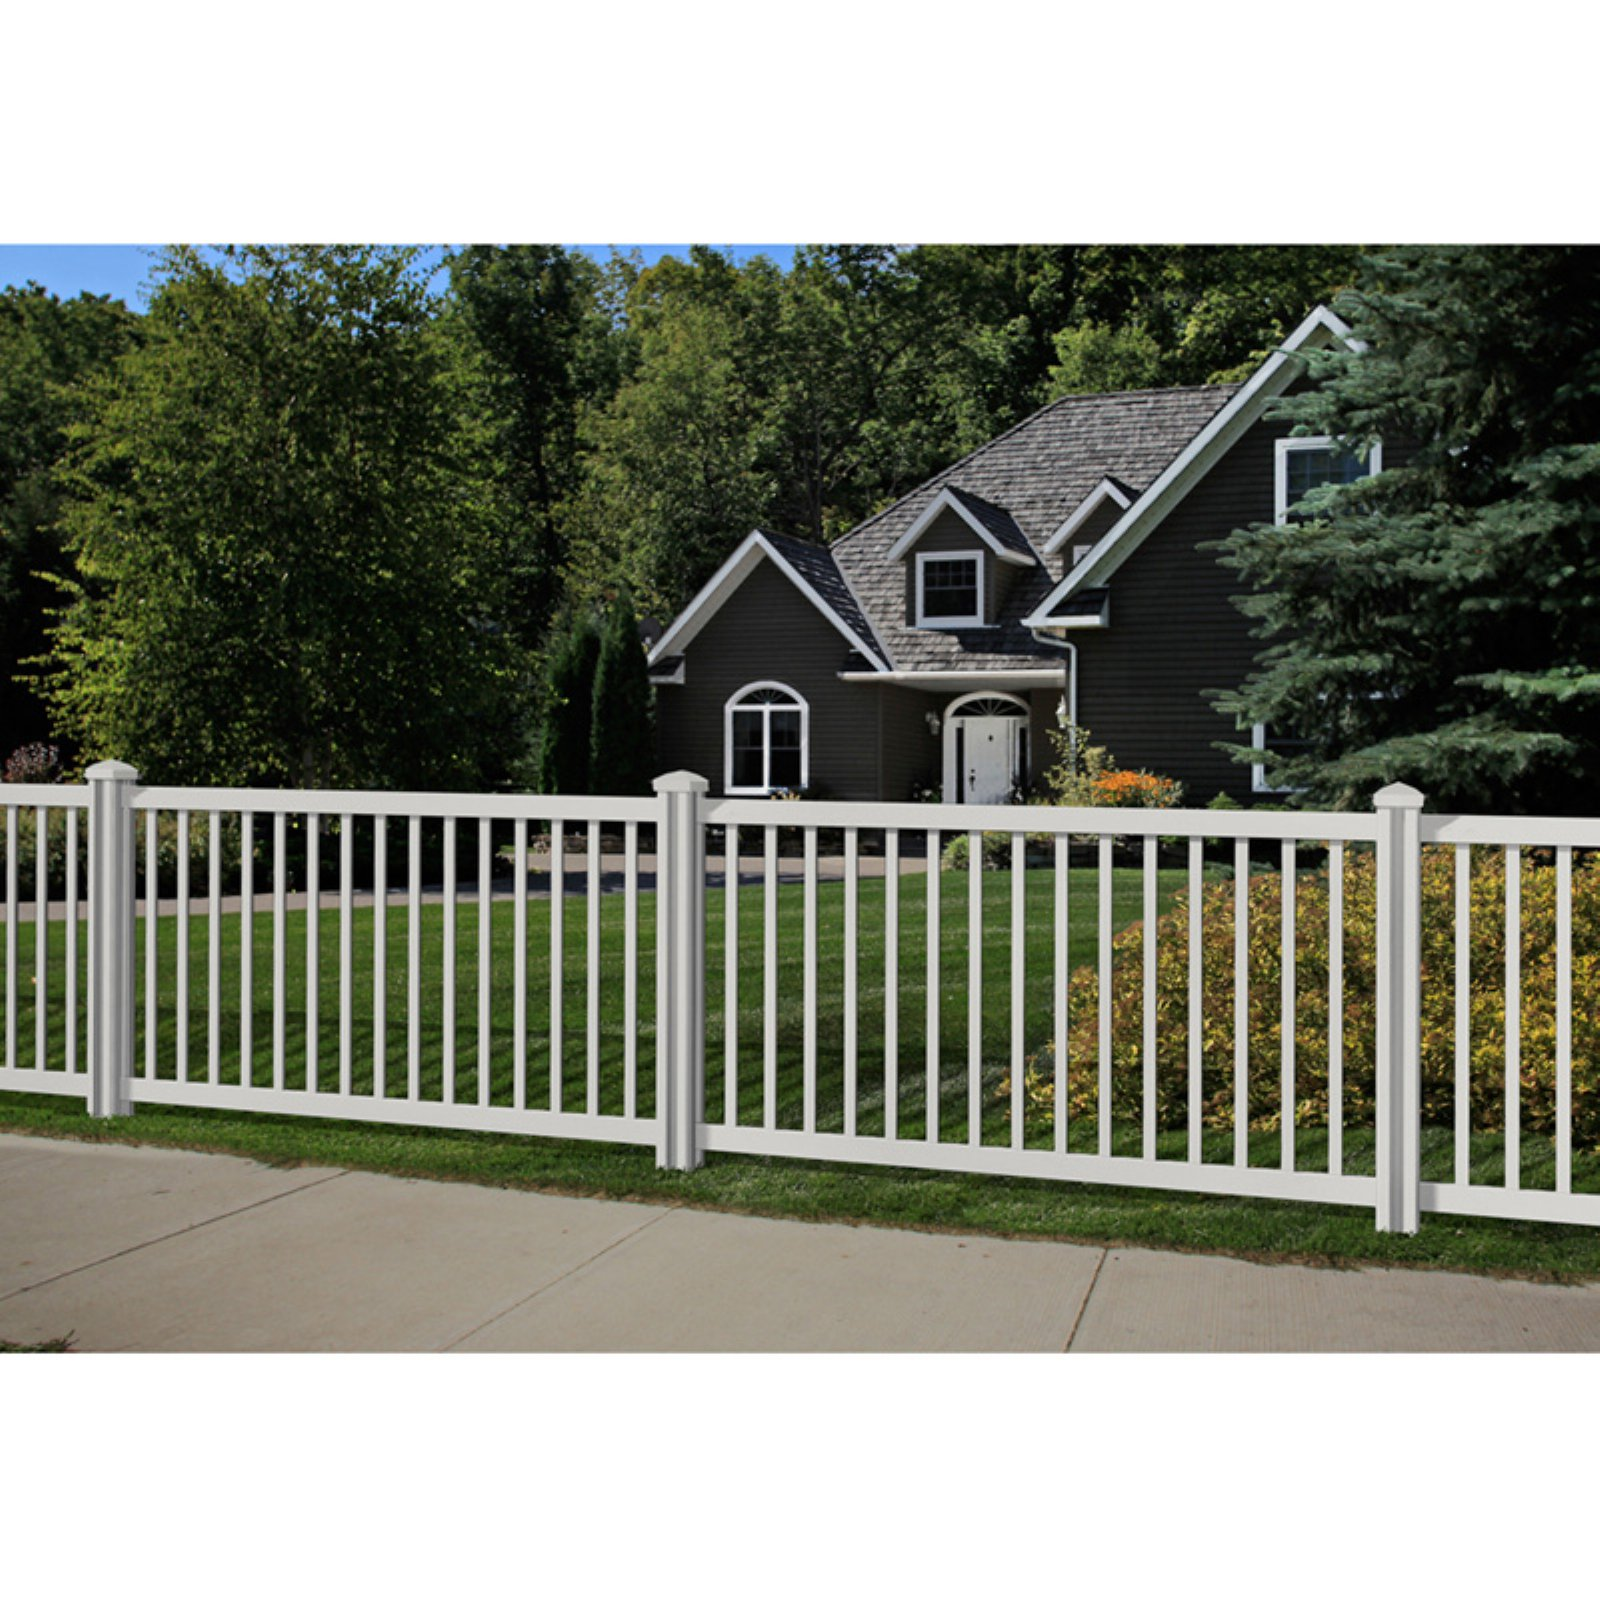 Wam Bam Premium Yard and Pool Vinyl Fence Panel with Post and Cap 4 ft. by Wam Bam Fence CO.